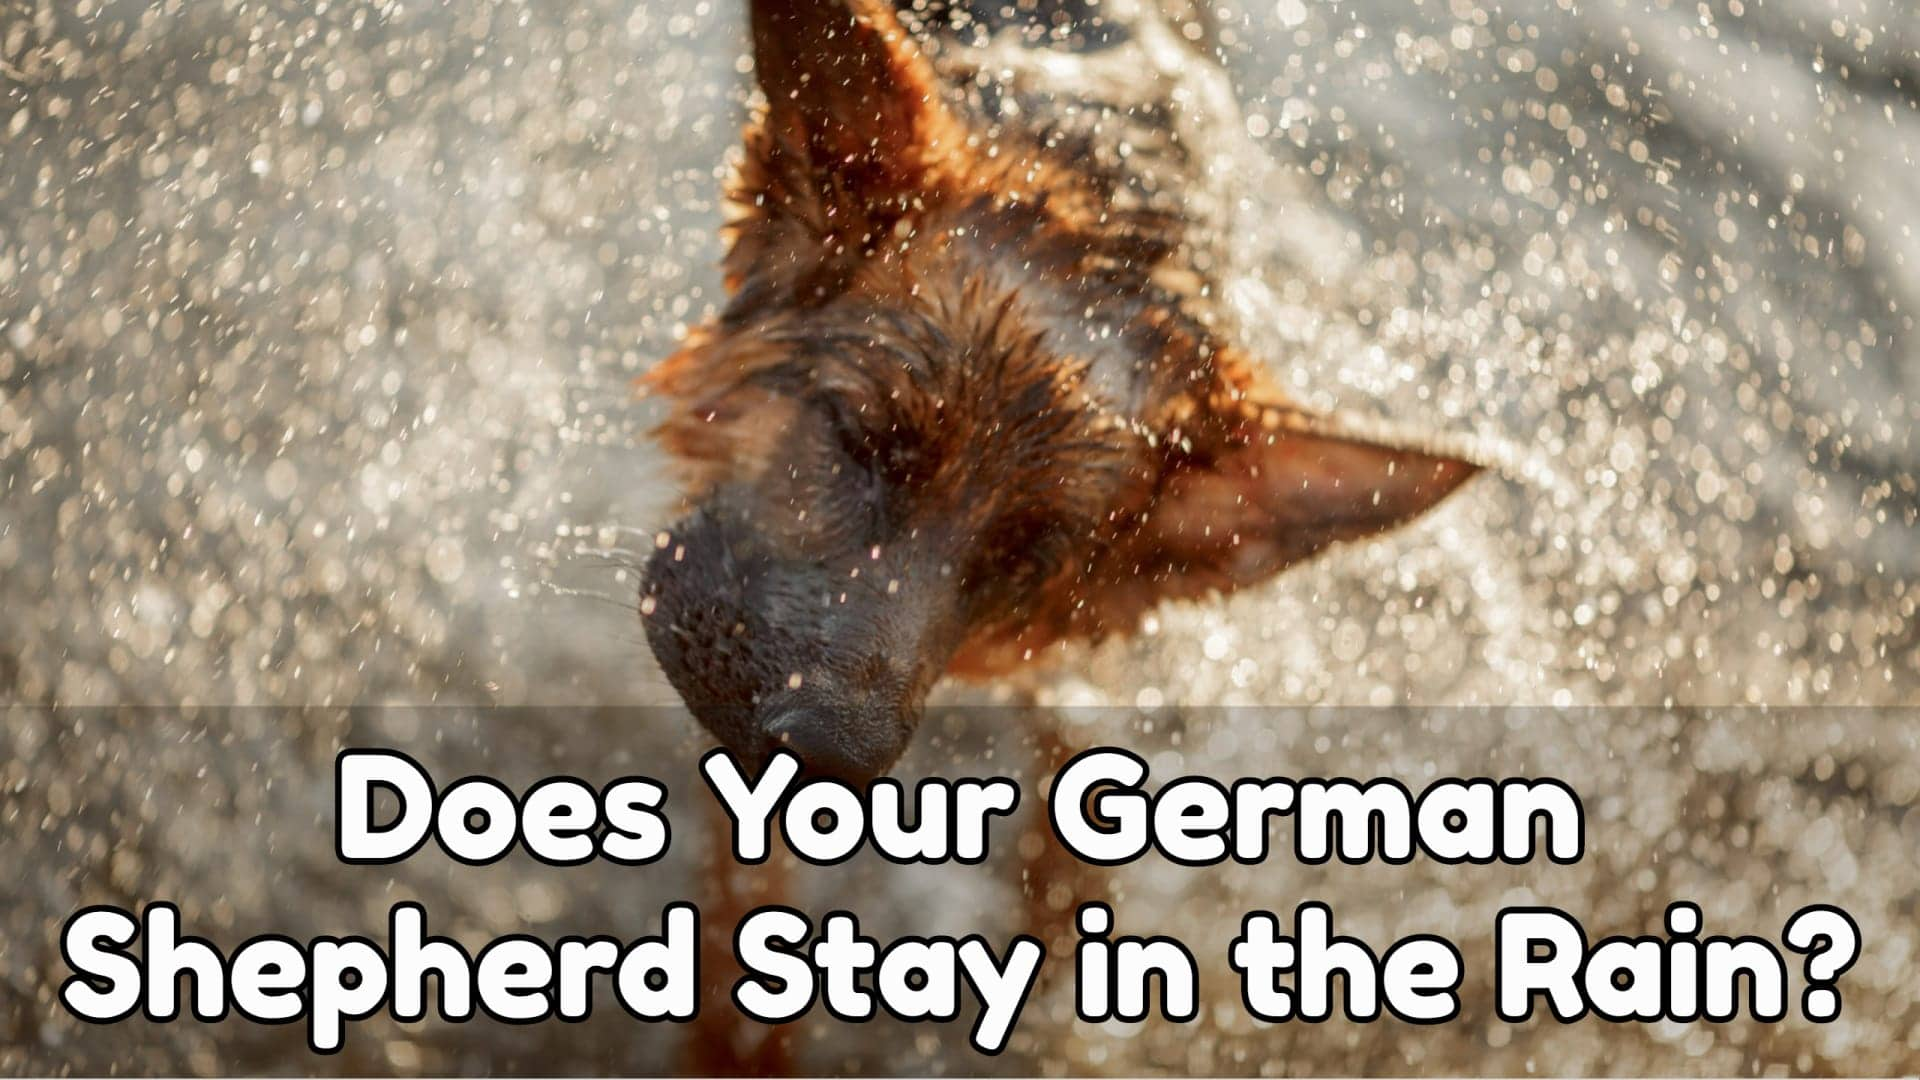 Does Your German Shepherd Stay in the Rain